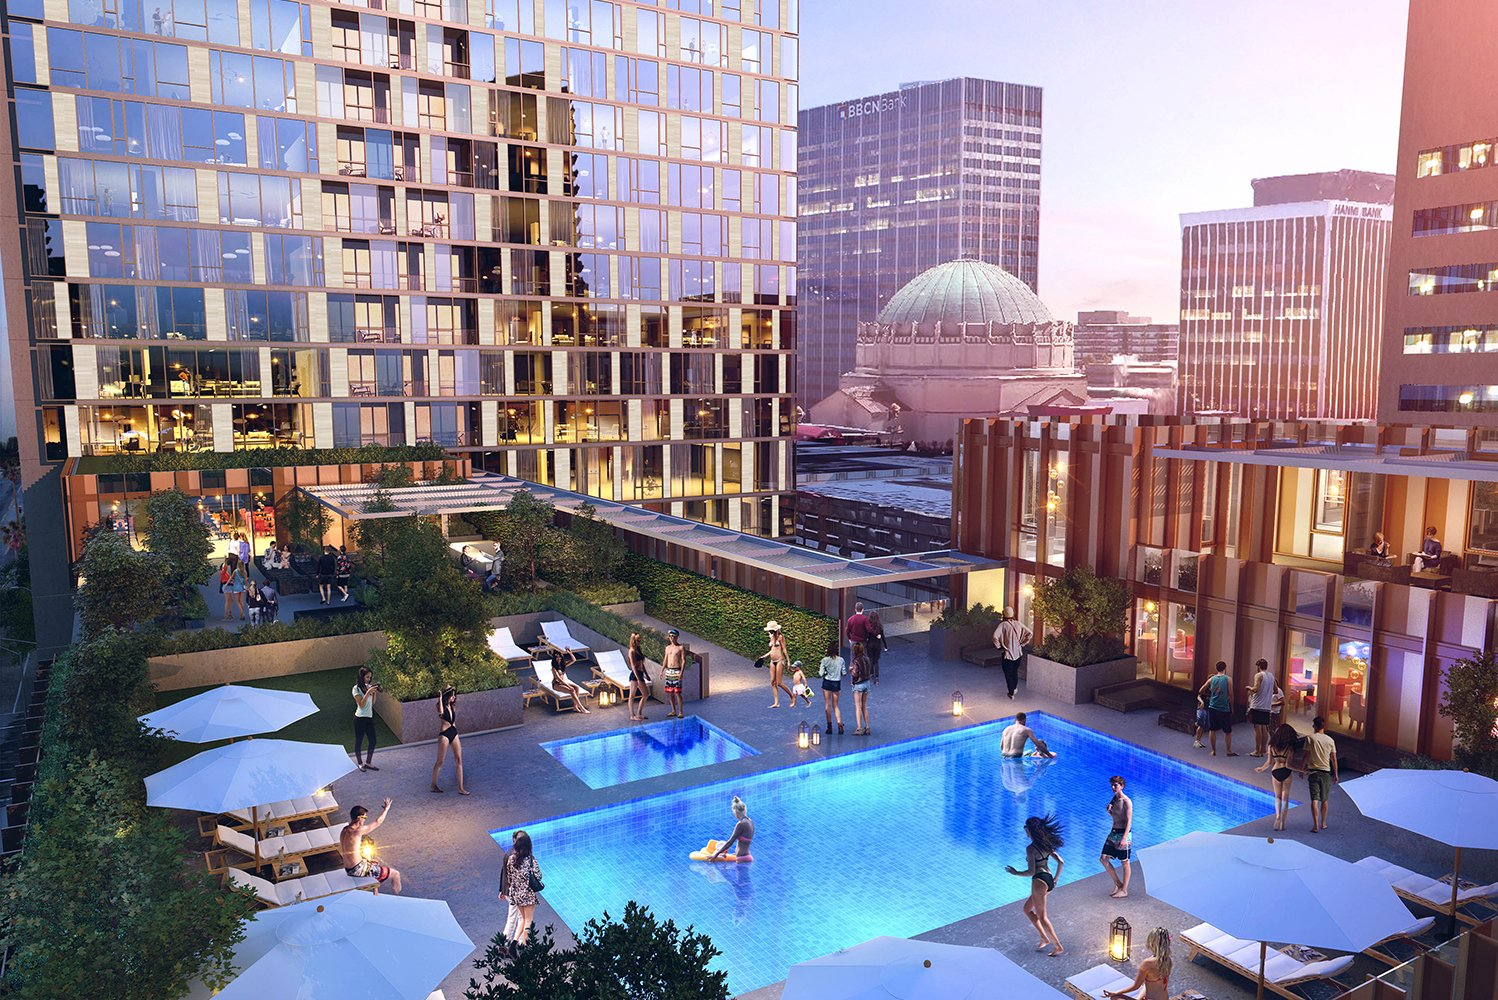 The first Hyatt Centric hotel is slated to open in Los Angeles' Koreatown. Photo credit: LARGE Architecture